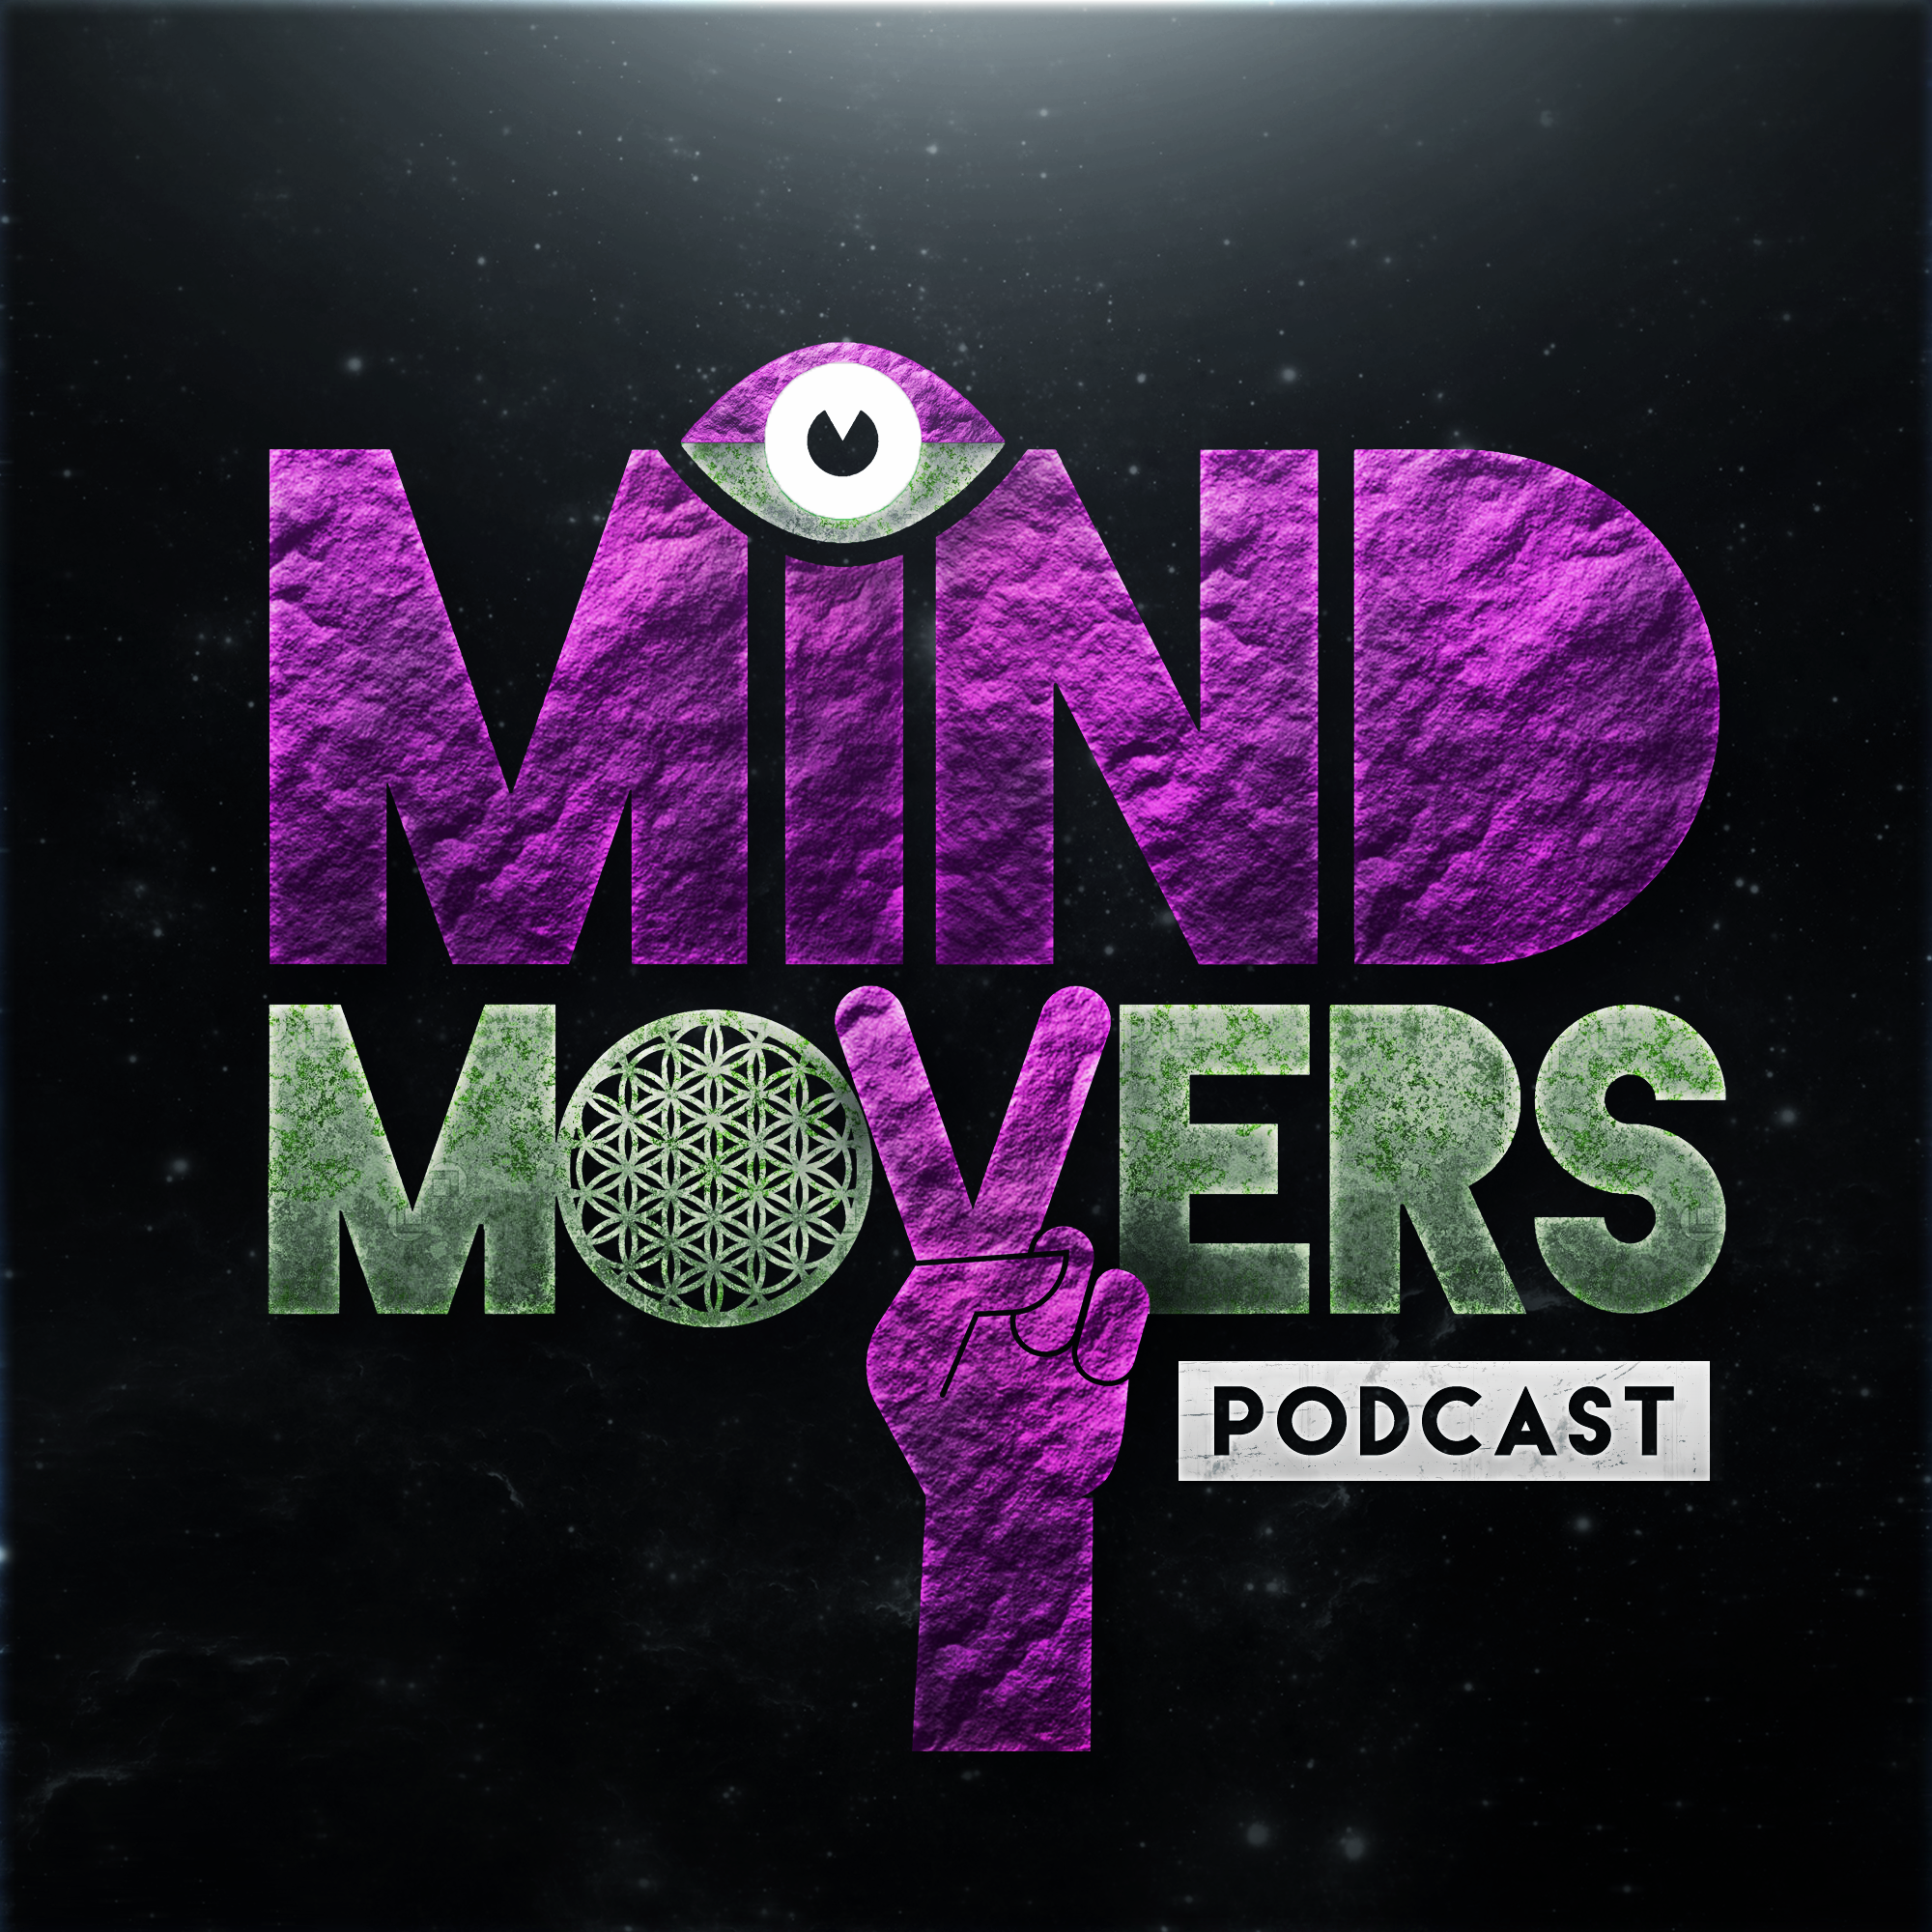 Podcast #37 Investigating the Biological World Within Yourself